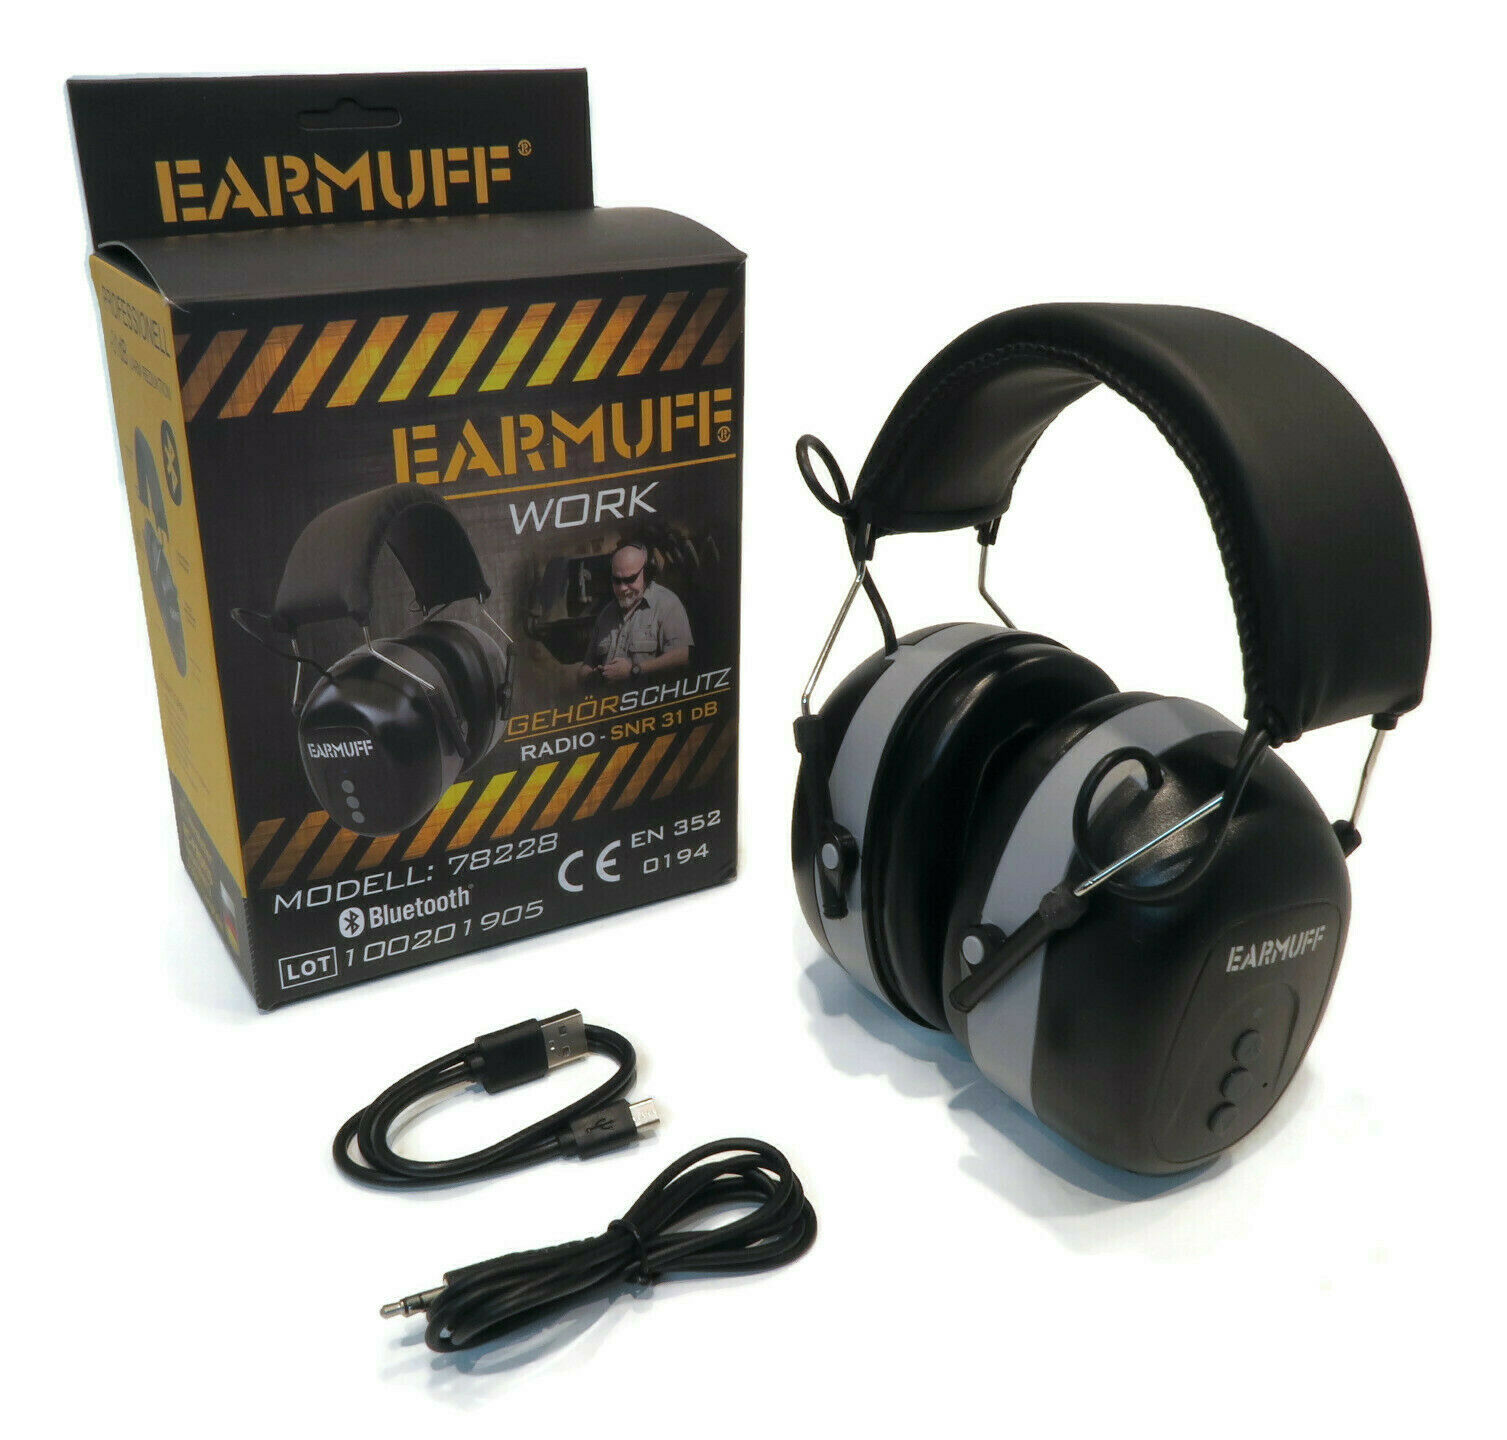 Earmuff Black Wireless Headset 31db With Bluetooth For Work Amp Construction Site